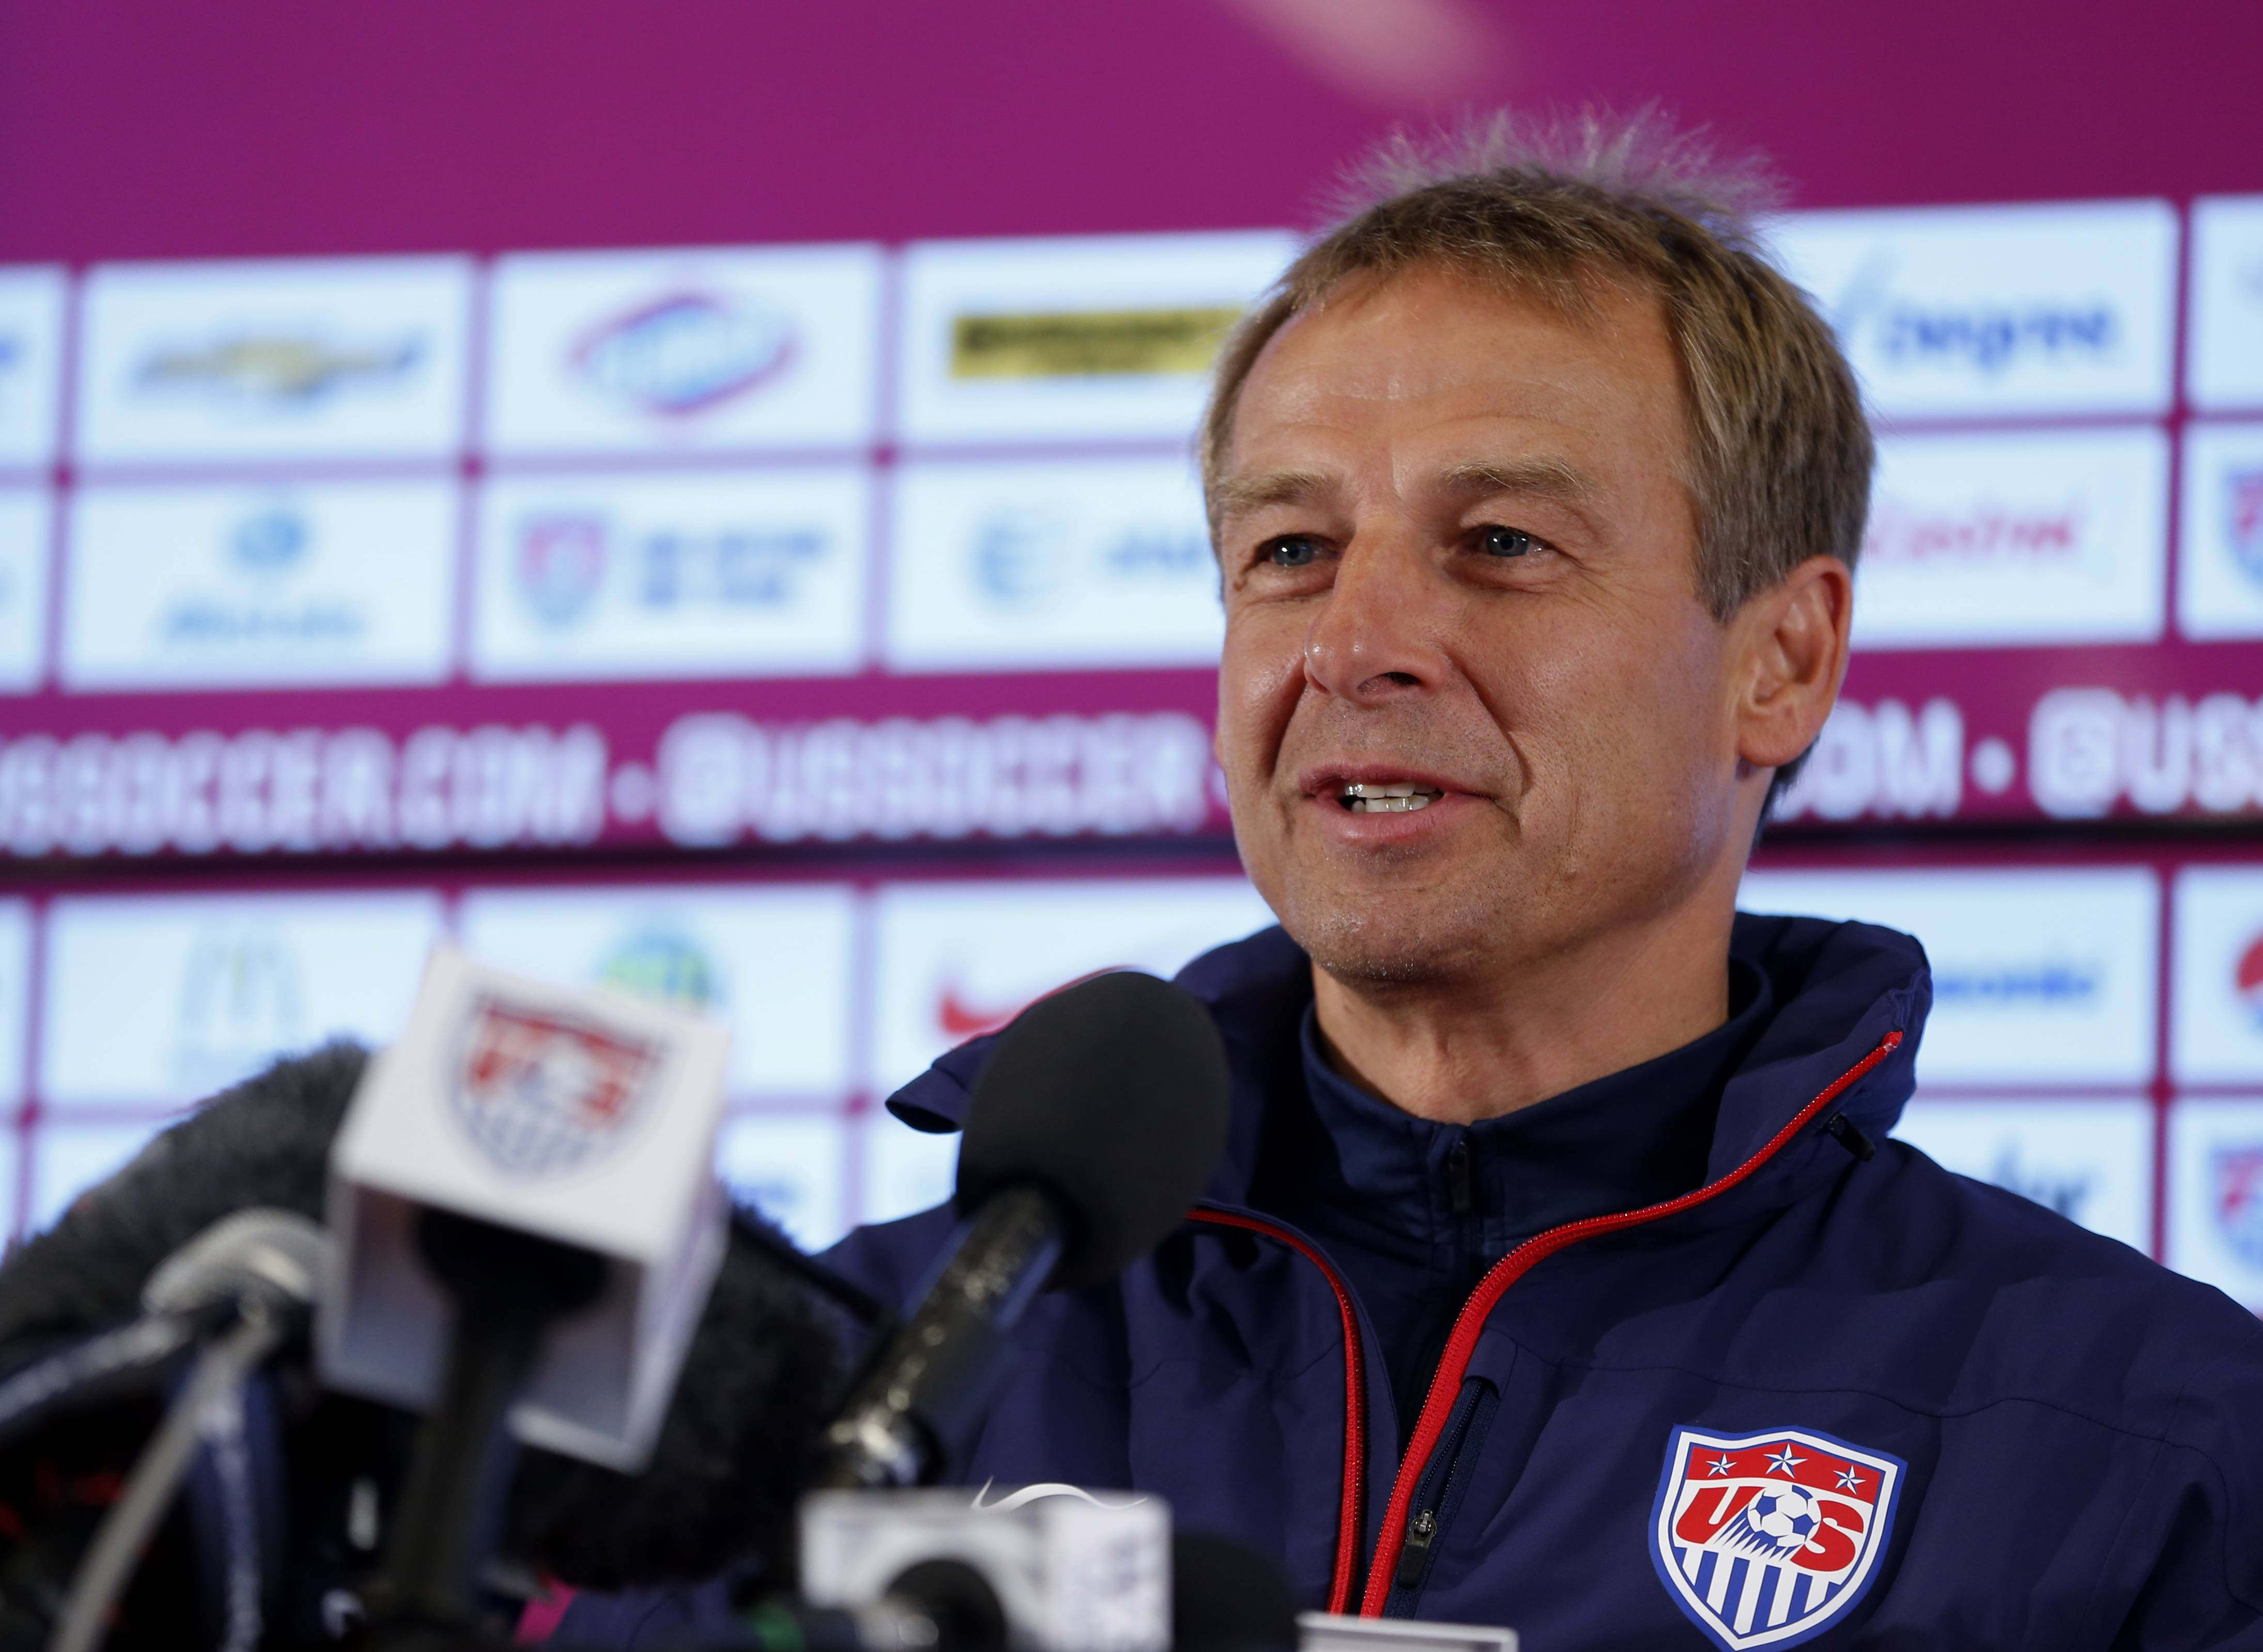 United States' head coach Juergen Klinsmann has said his team has no chance of winning the World Cup and should just focus on advancing in group play.